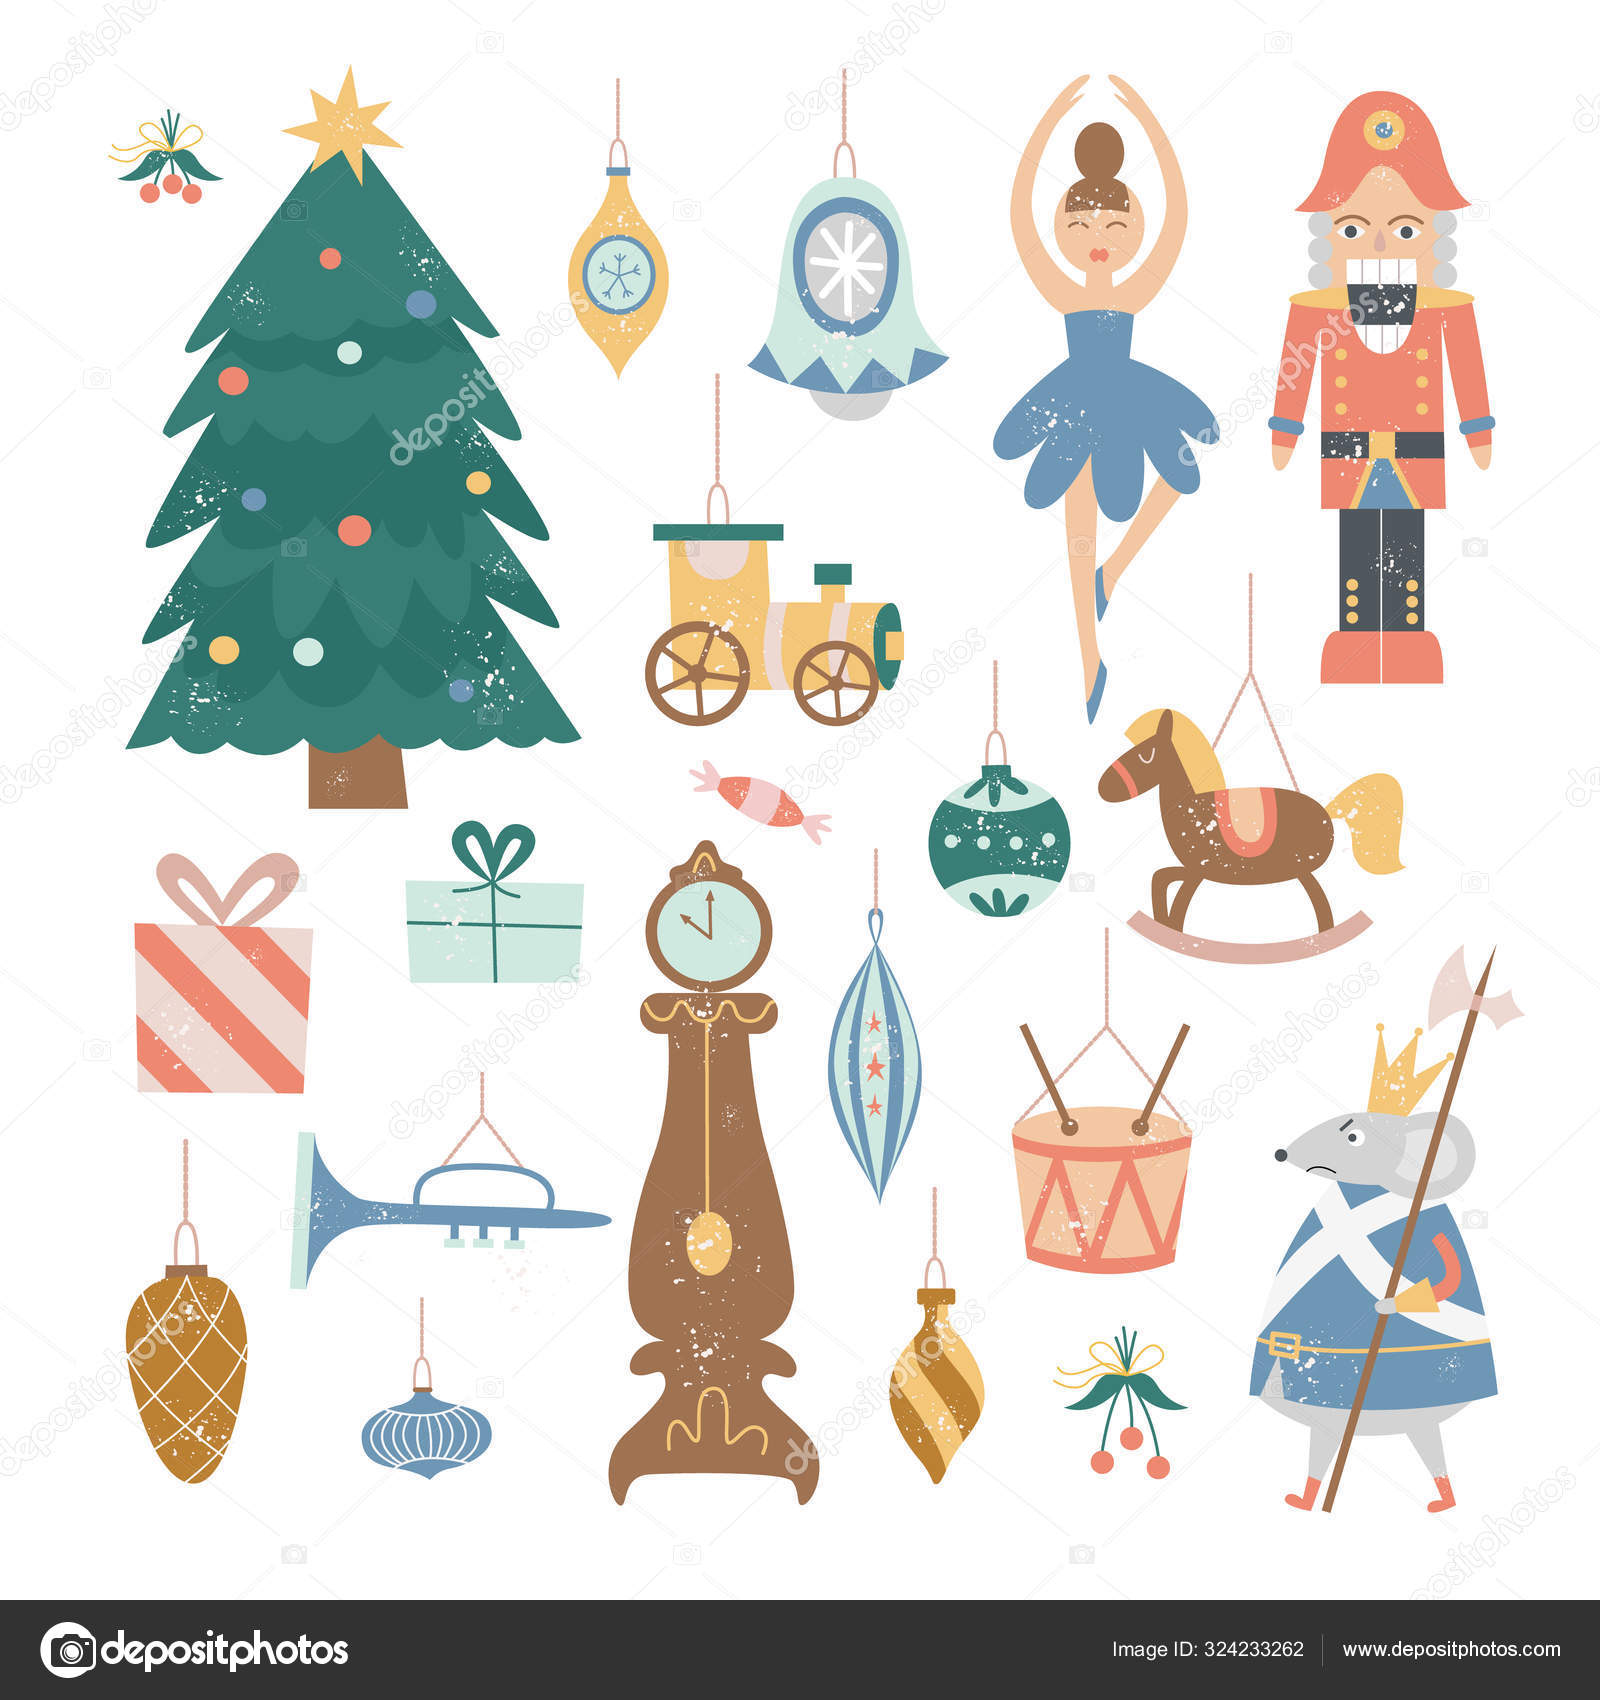 Nutcracker Christmas Decoration Set Vintage Cartoon Holiday Tree Ornaments Stock Vector C Sabelskaya 324233262 Check out our cartoon tree selection for the very best in unique or custom, handmade pieces from our party décor shops. https depositphotos com 324233262 stock illustration nutcracker christmas decoration set vintage html